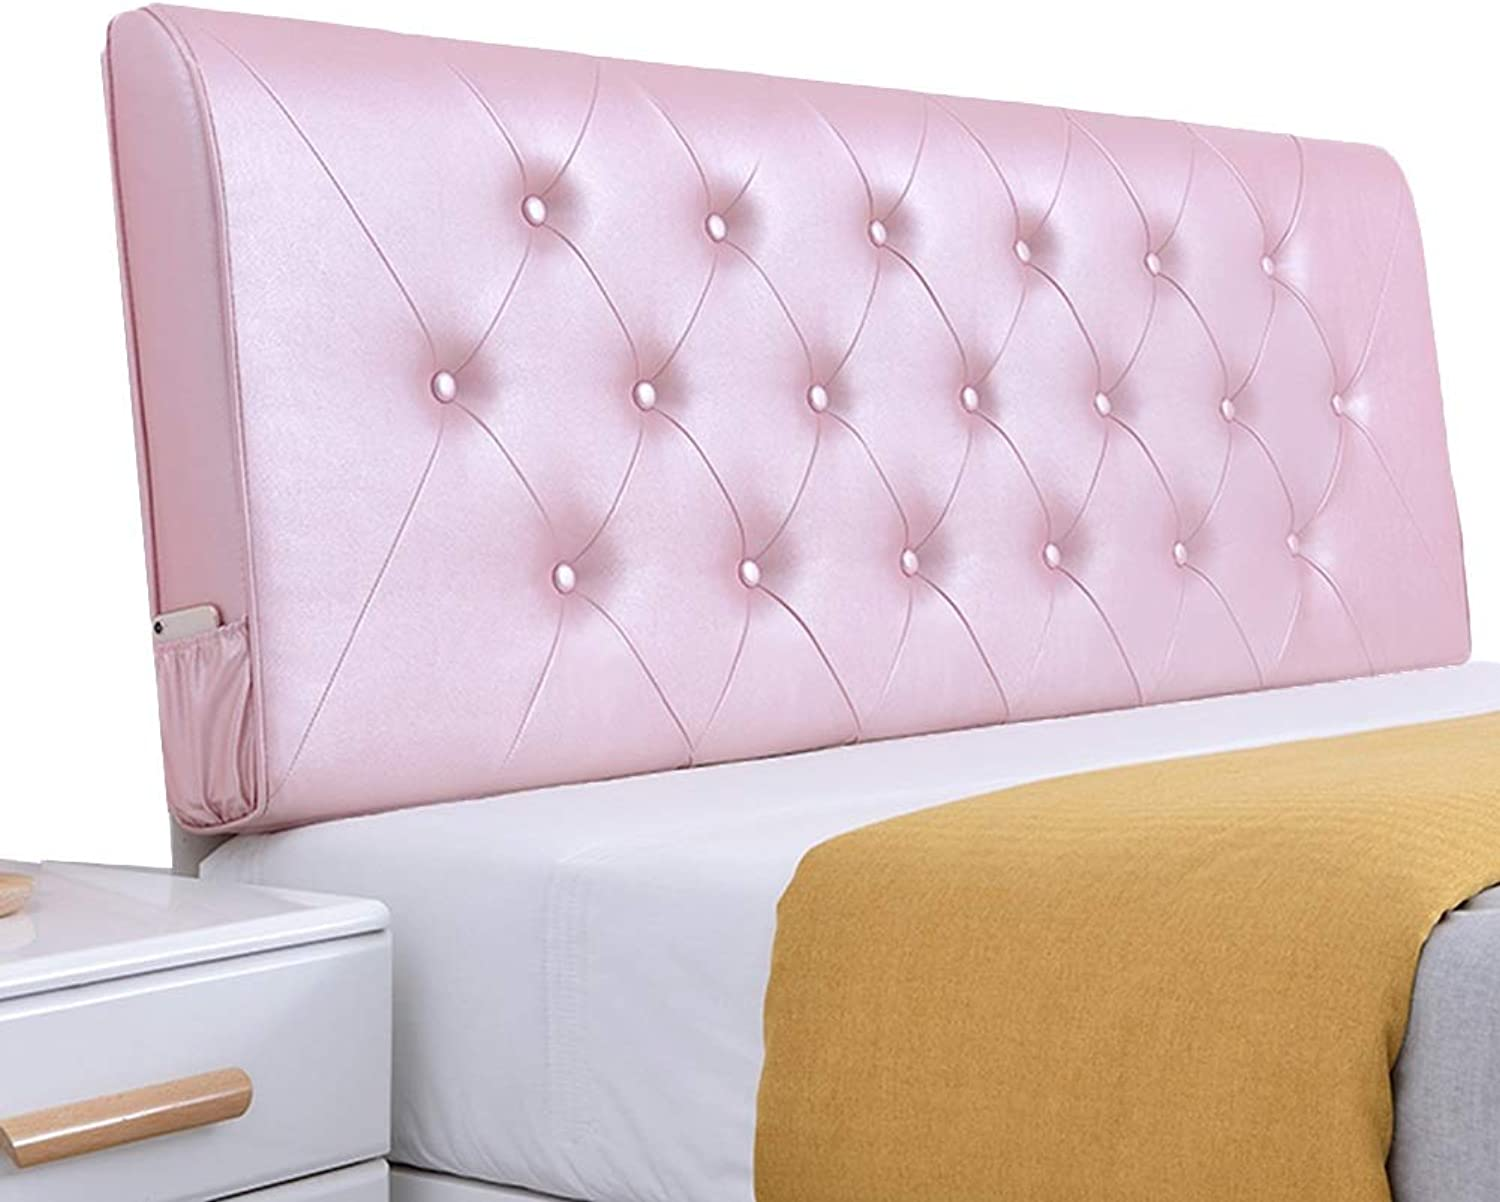 WENZHE Upholstered Fabric Headboard Bedside Cushion Pads Cover Bed Wedges Backrest Waist Pad Washable Home PU Pillow Modern, 6 colors Optional (color   Pink, Size   120x60x10cm)